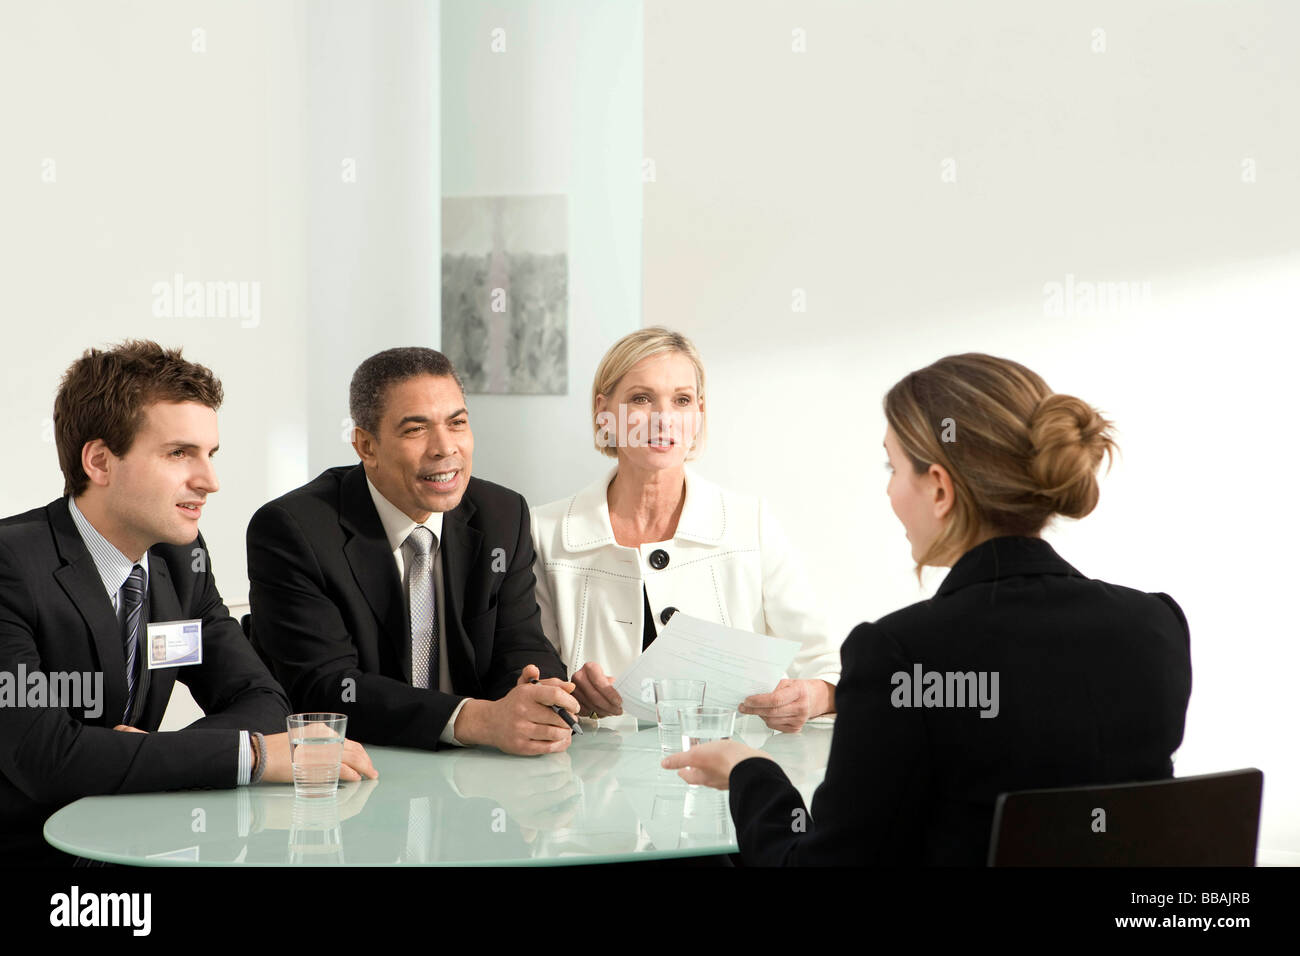 An interview in front of a panel - Stock Image